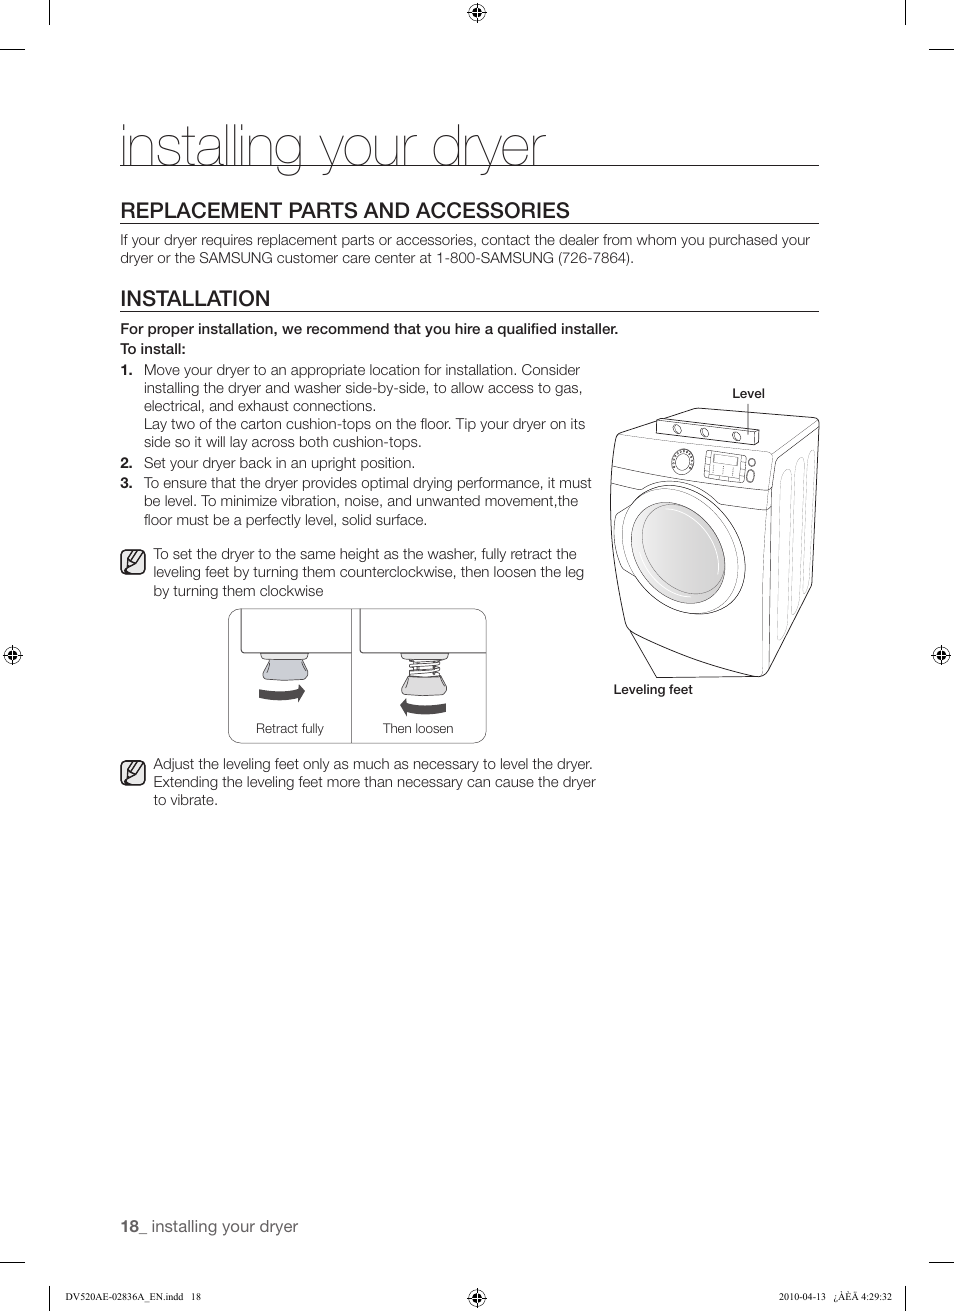 Samsung Dryer Dv330aebxaa Wiring Diagram Electrical Diagrams Dv520aep Xaa Explained